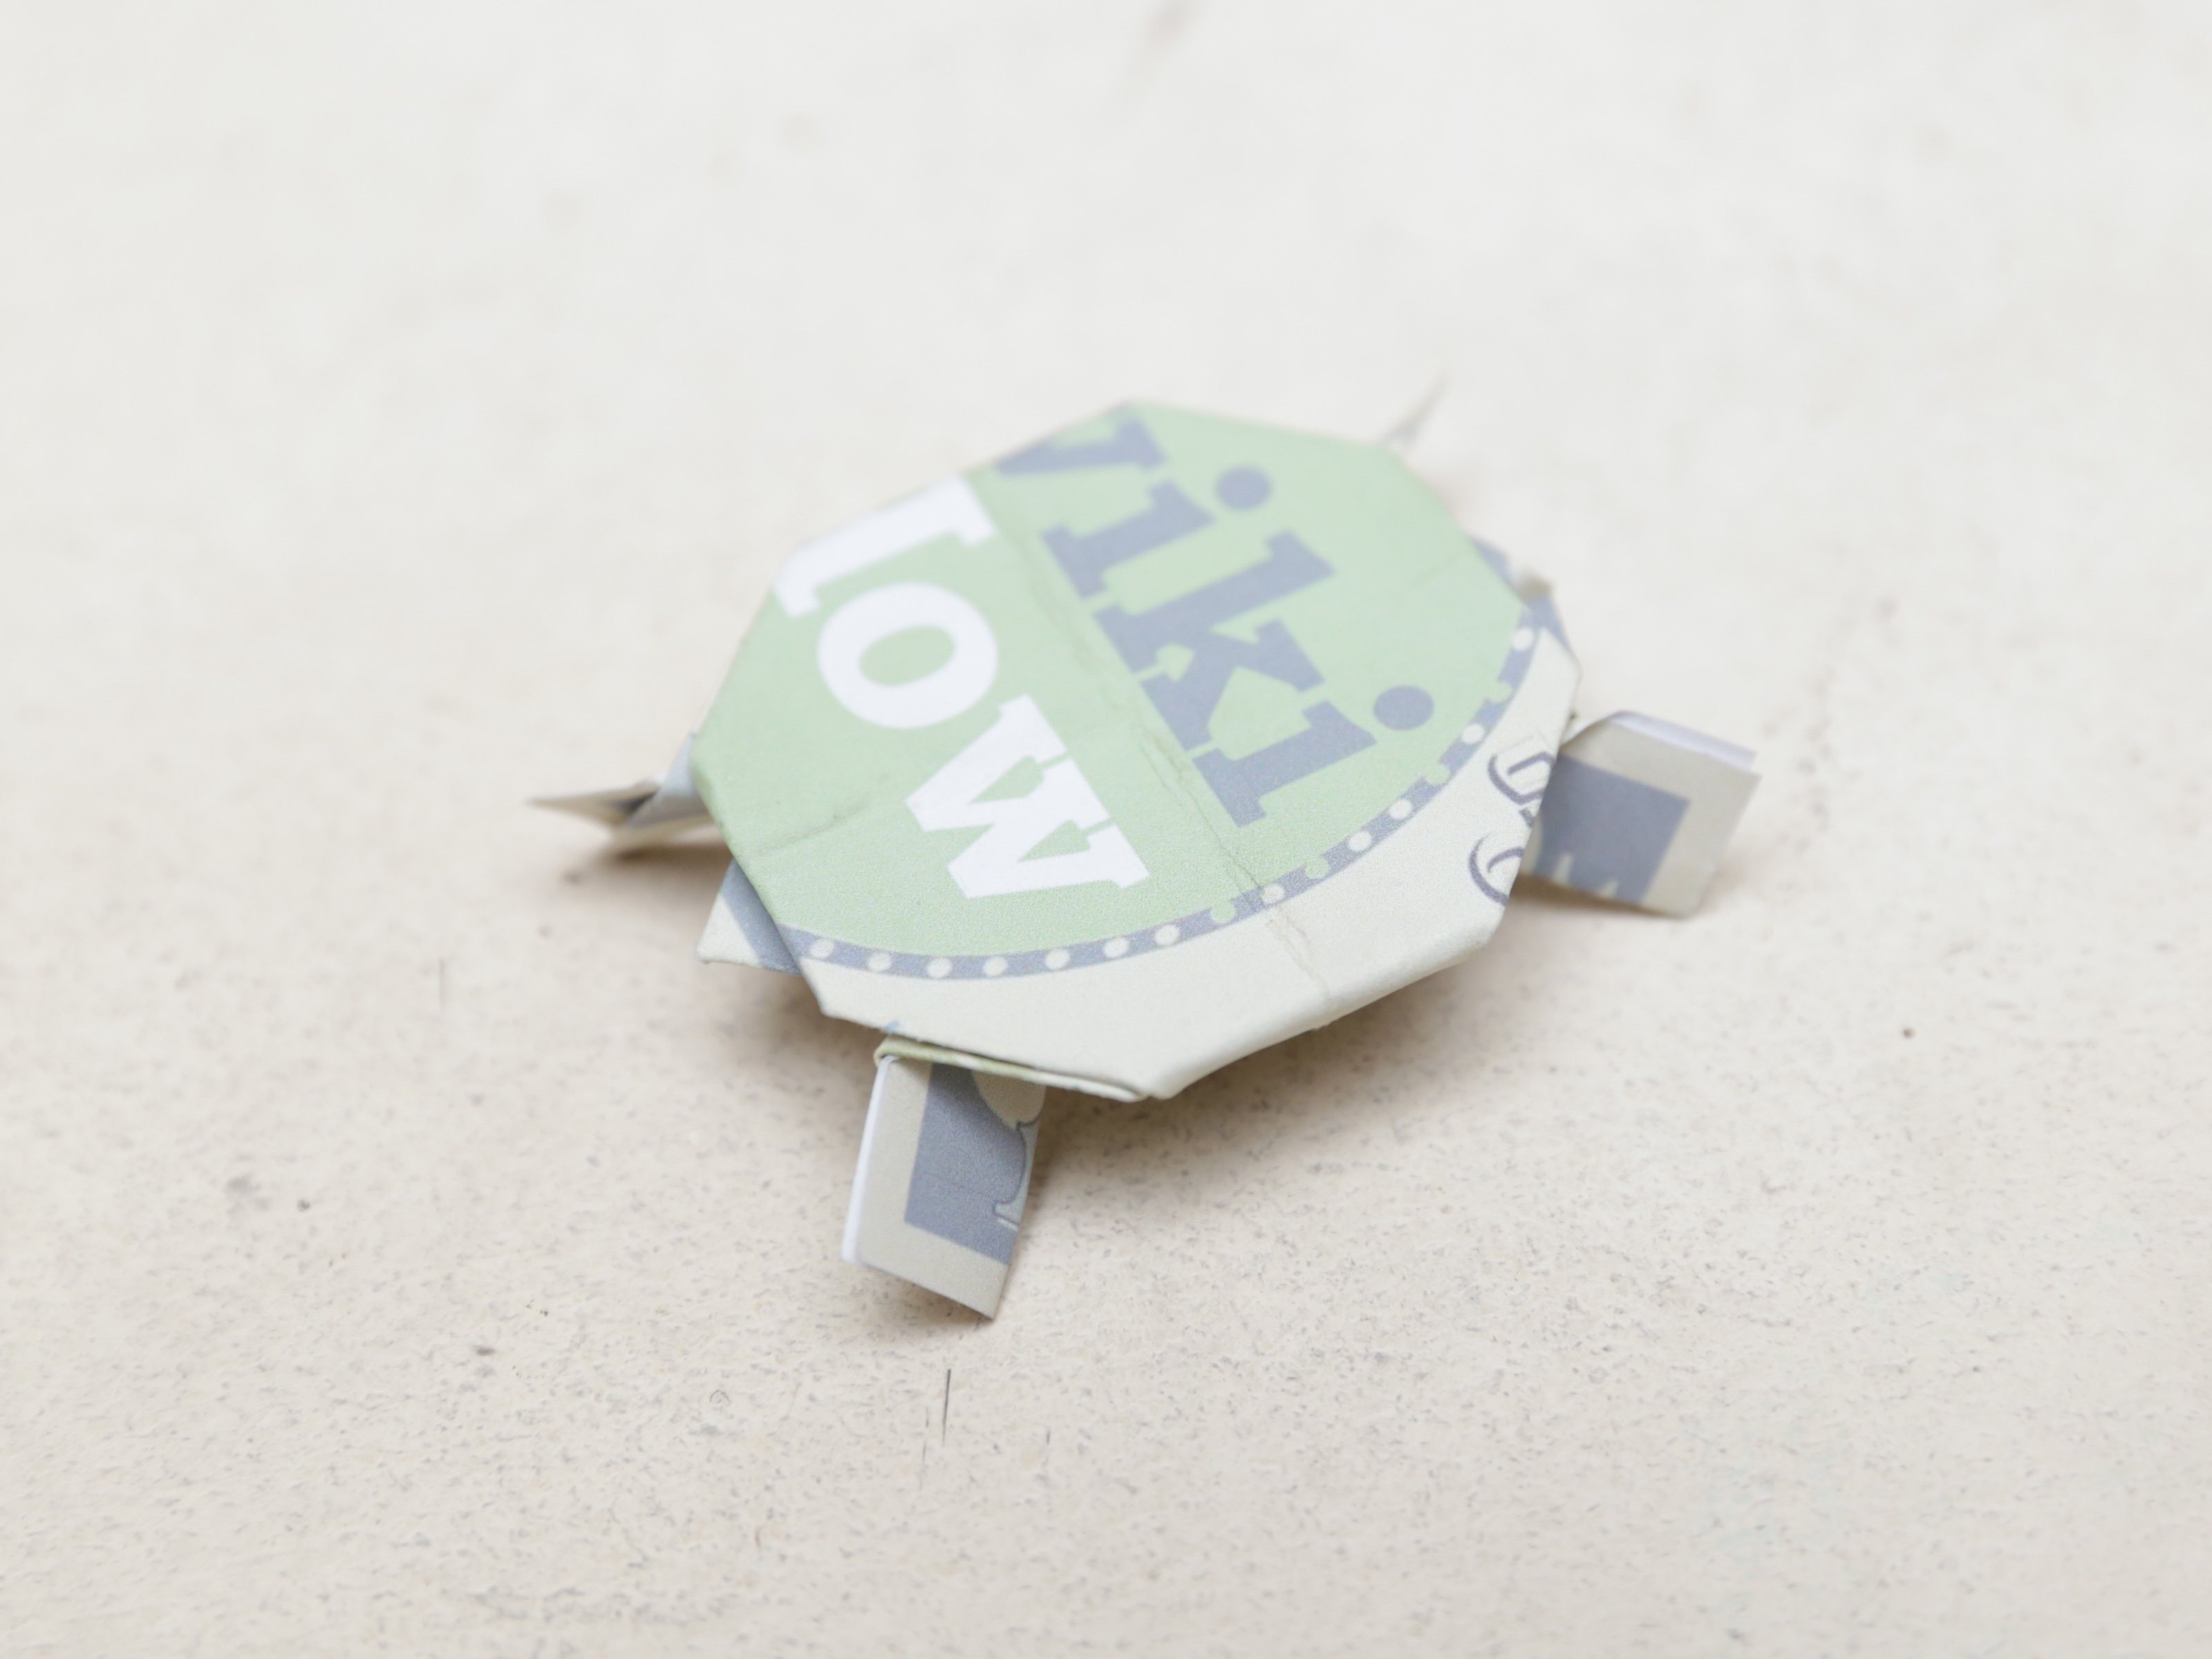 Origami Bow Tie Dollar Bill How To Make A Turtle Out Of A Dollar Bill With Pictures